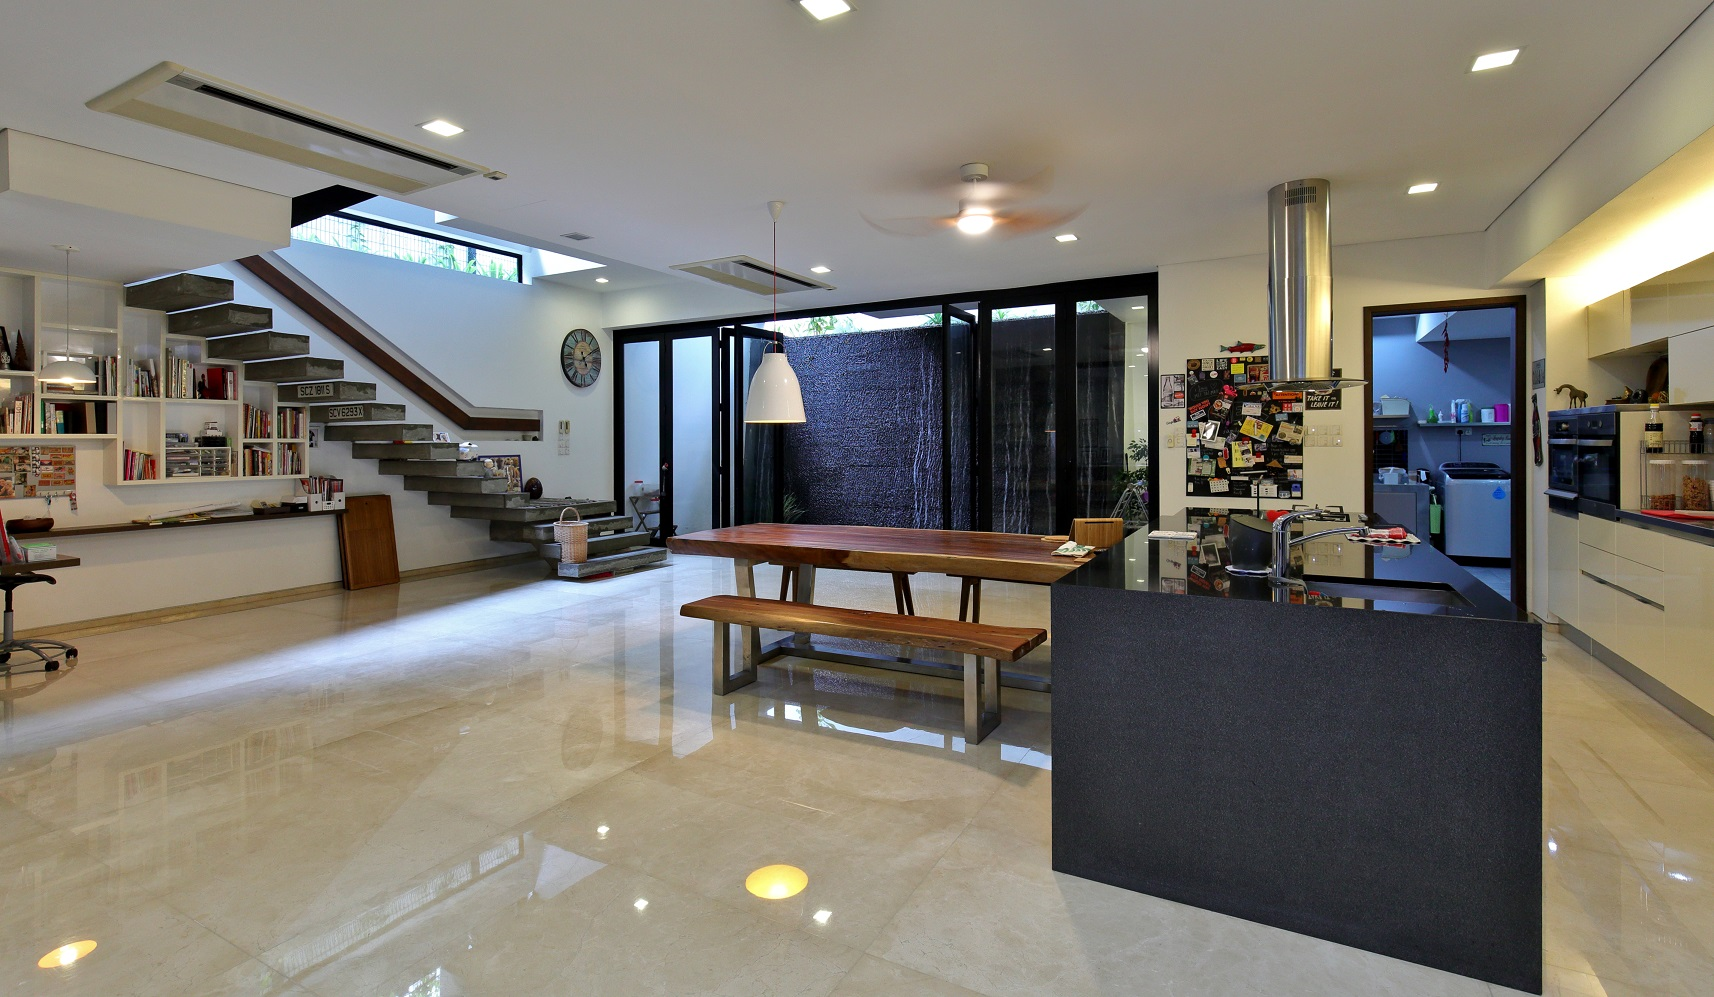 The basement is where the owner and his wife spend most of their time (Photo: Samuel Isaac Chua/EdgeProp Singapore)